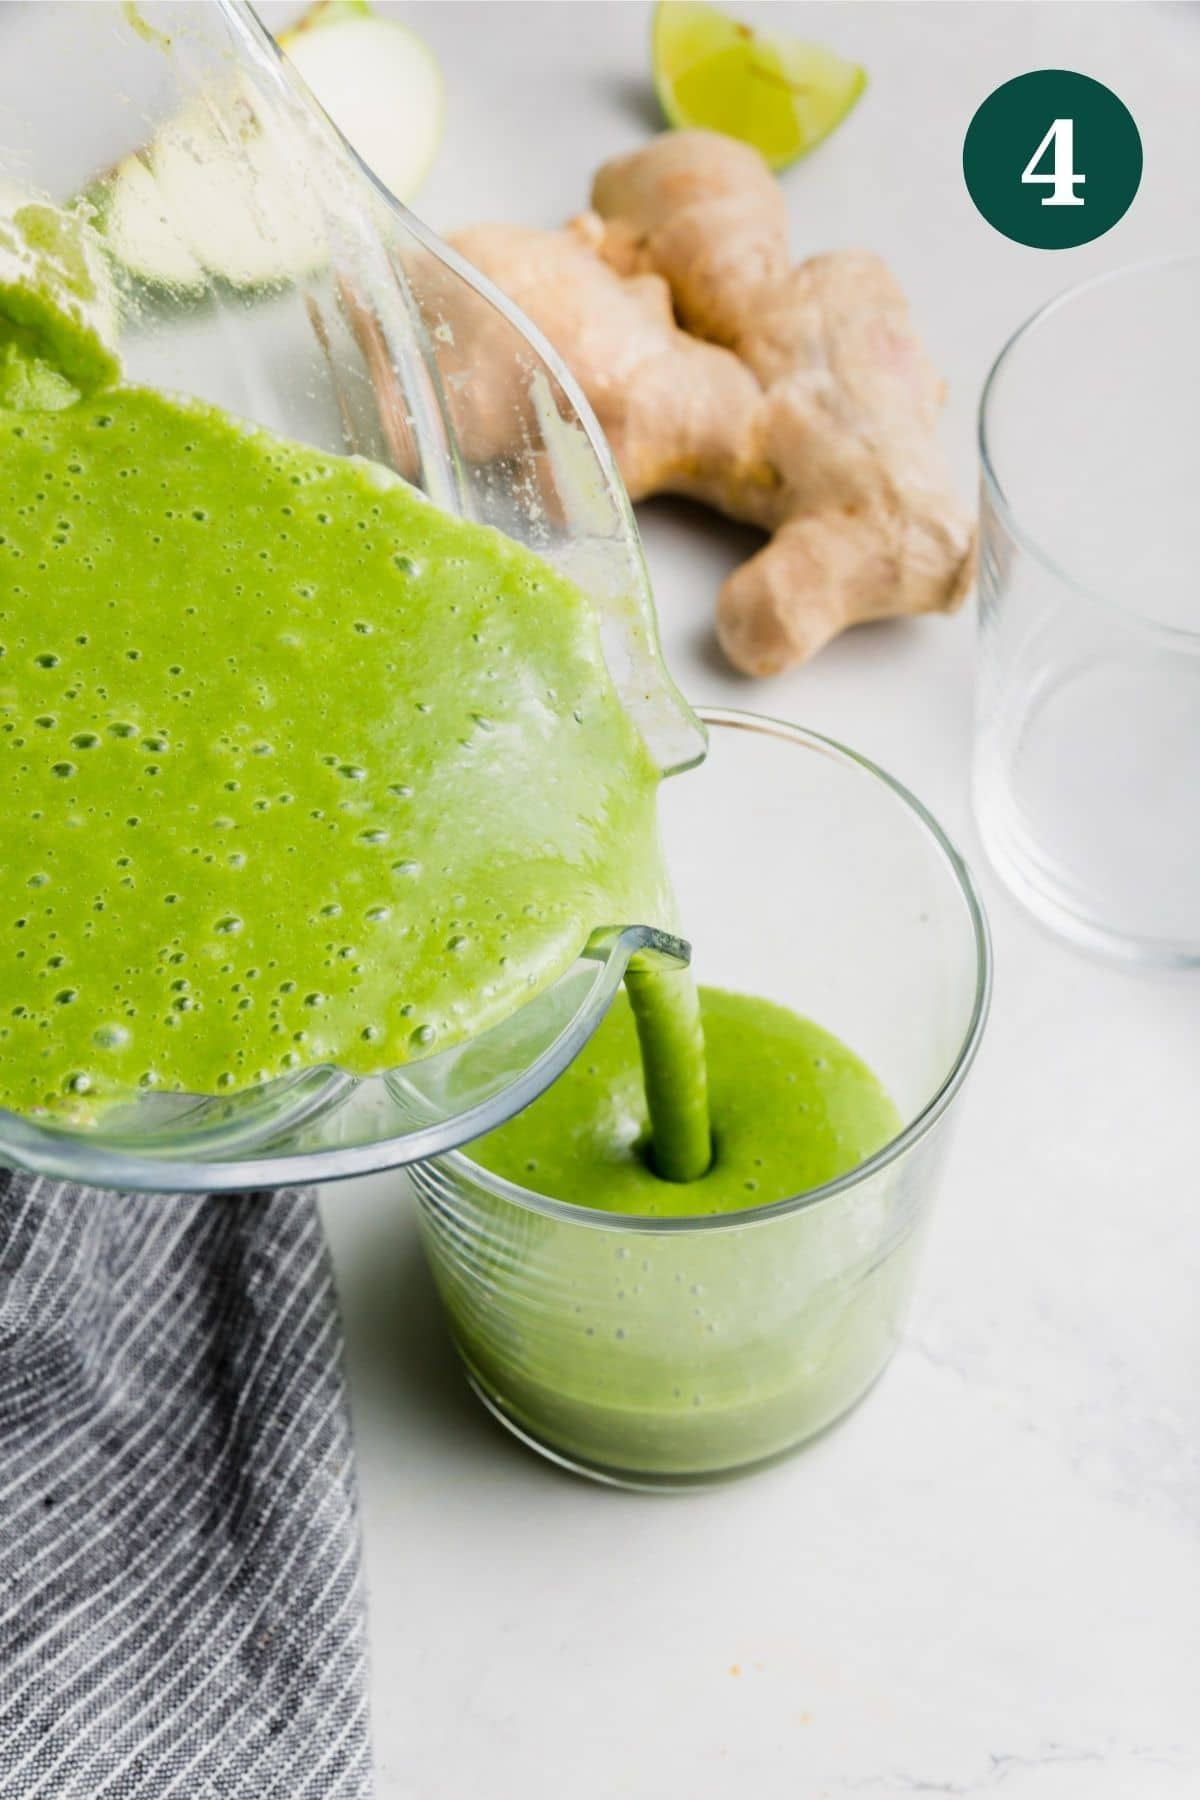 An apple kale green smoothie being poured into a glass.